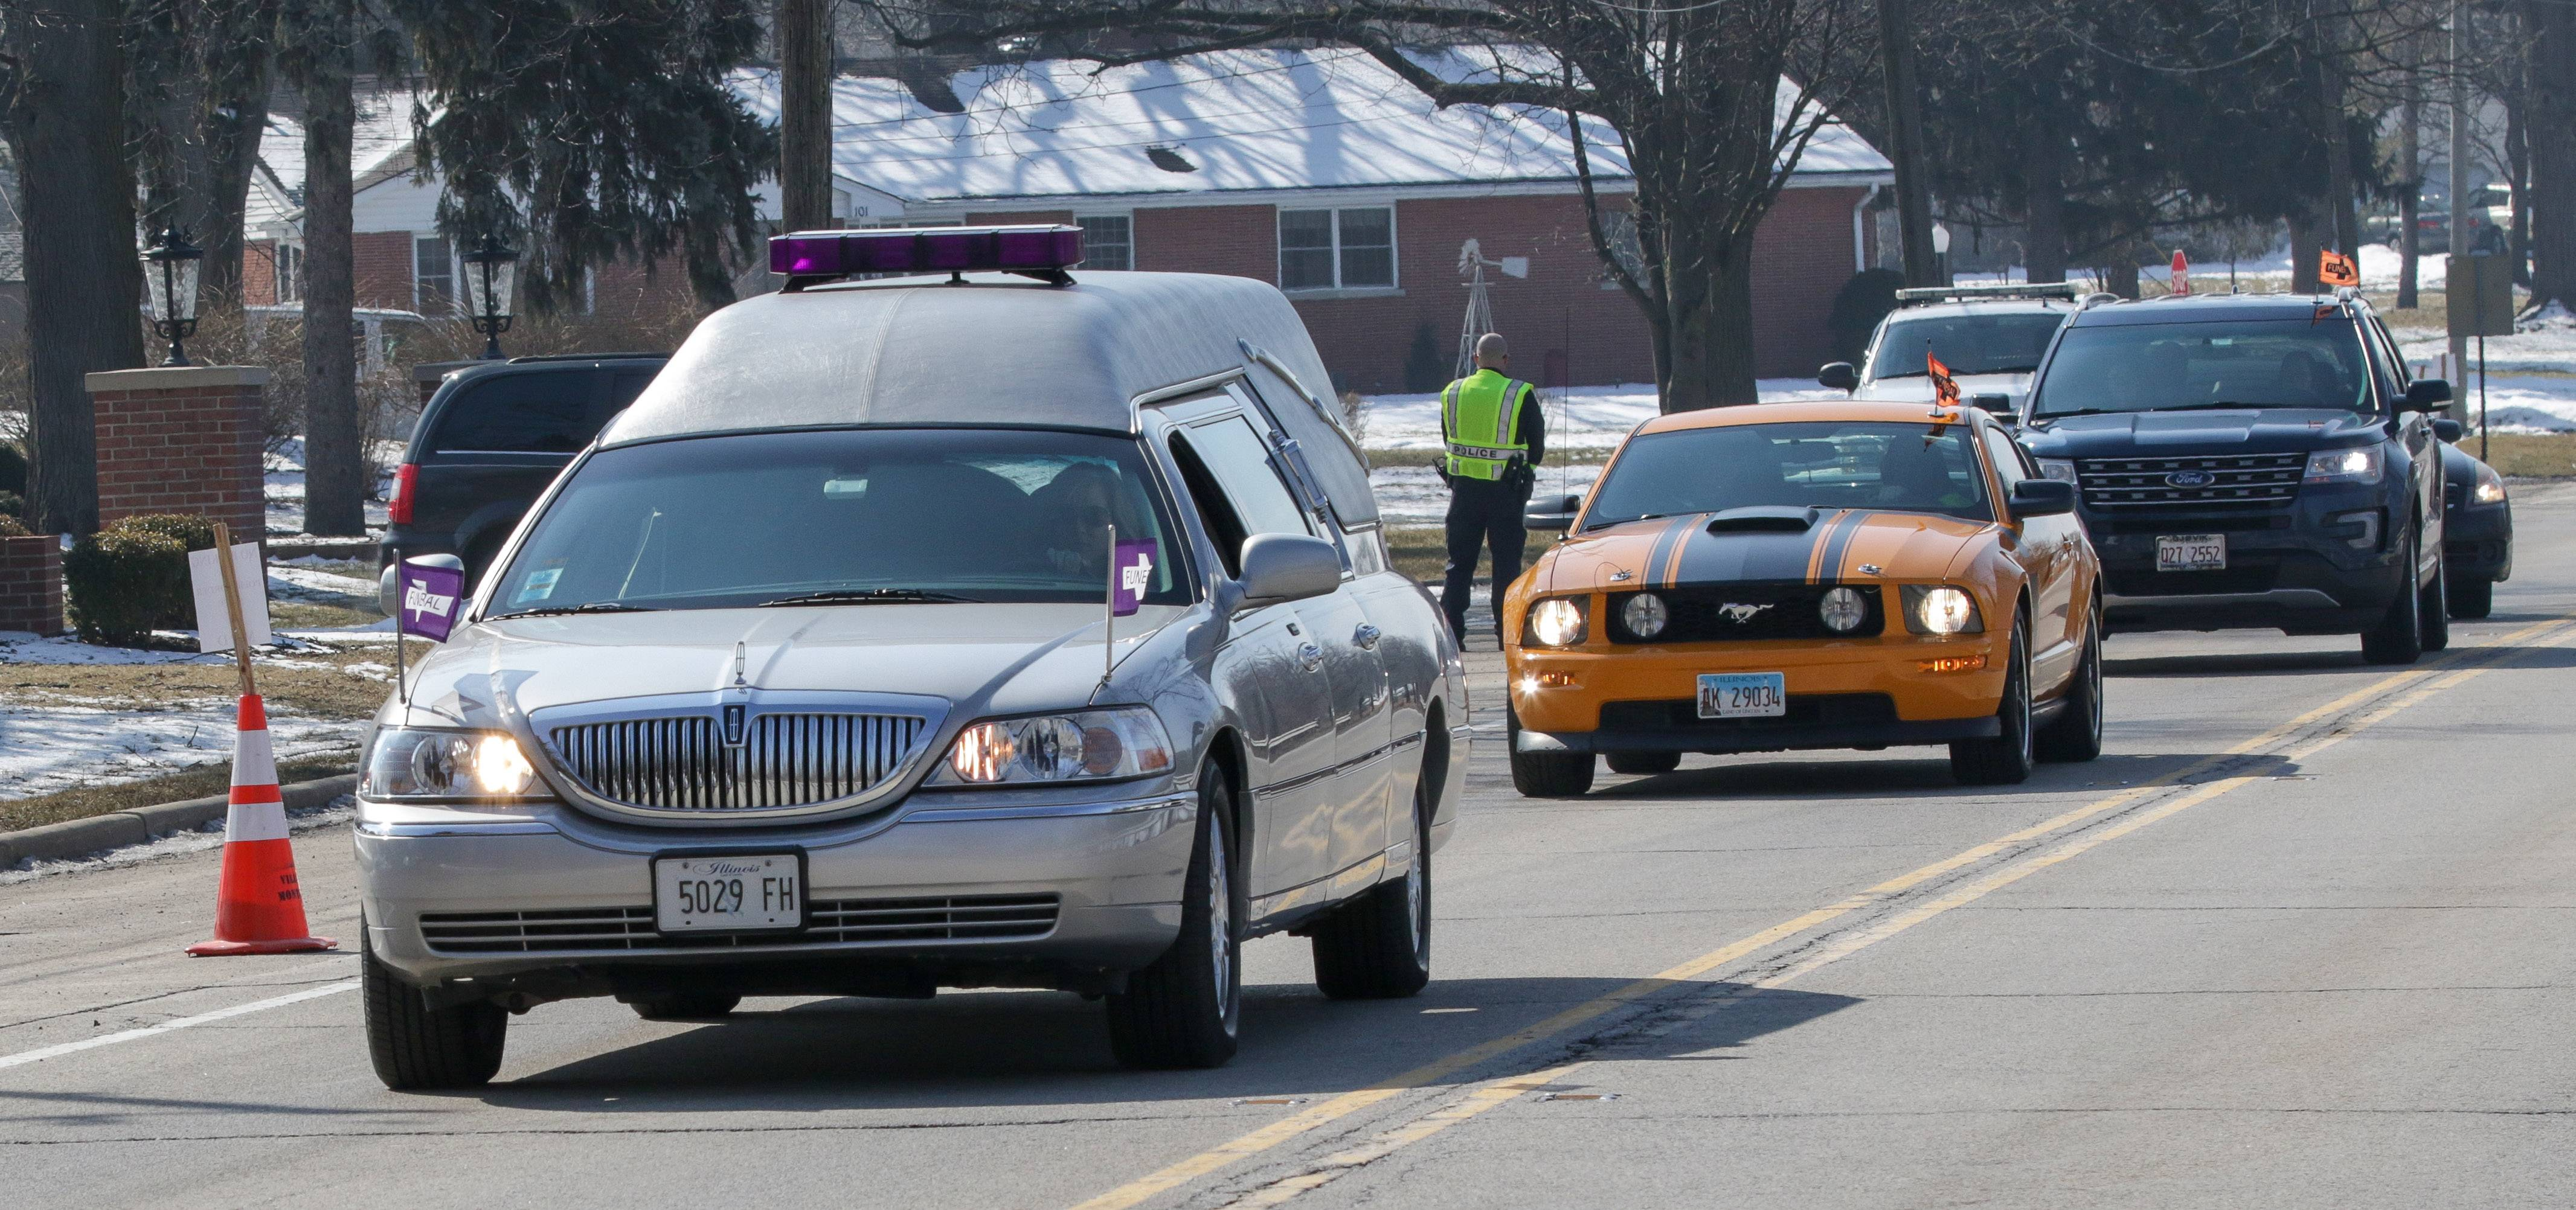 The funeral procession of Russell Beyer, of Yorkville, leaves Dieterle Memorial Home in Montgomery Friday. Beyer was among five Henry Pratt employees killed by a co-worker on Feb. 15 at the manufacturing plant in Aurora.